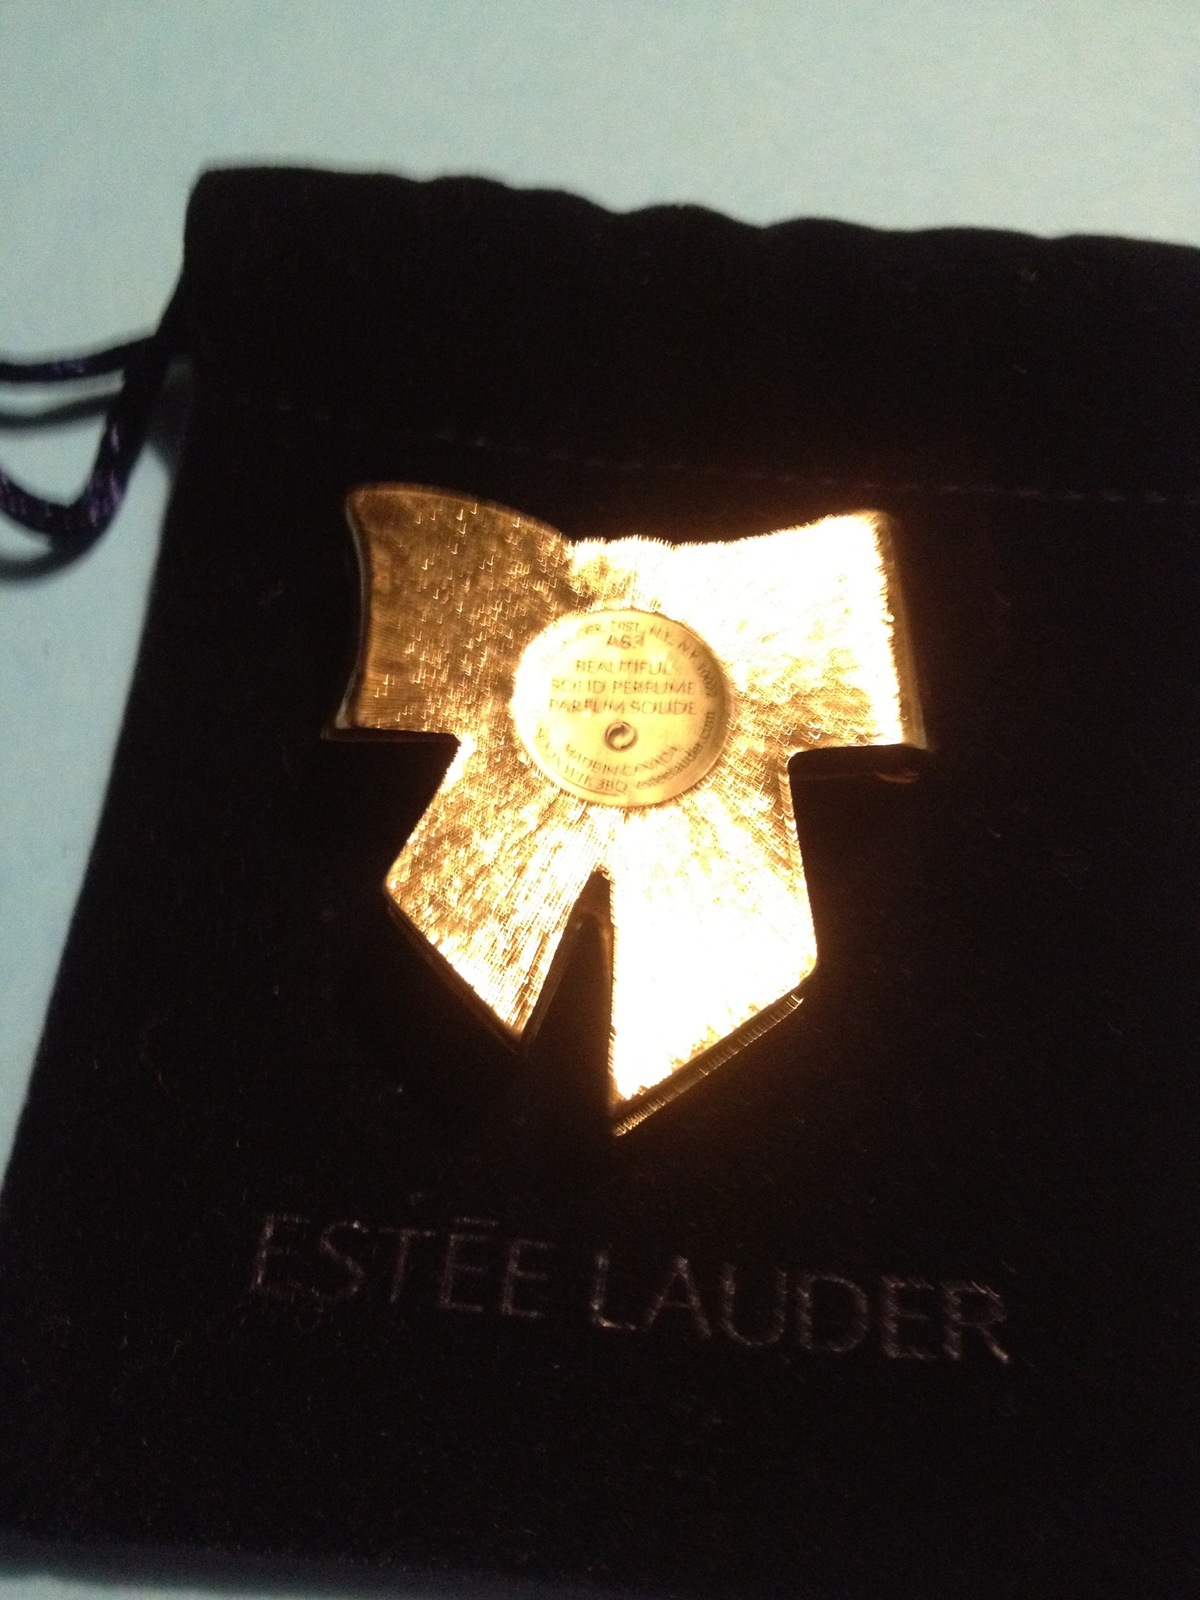 Estee Lauder USA PATRIOTIC RIBBON 2003 Perfume Compact - Red White and Blue